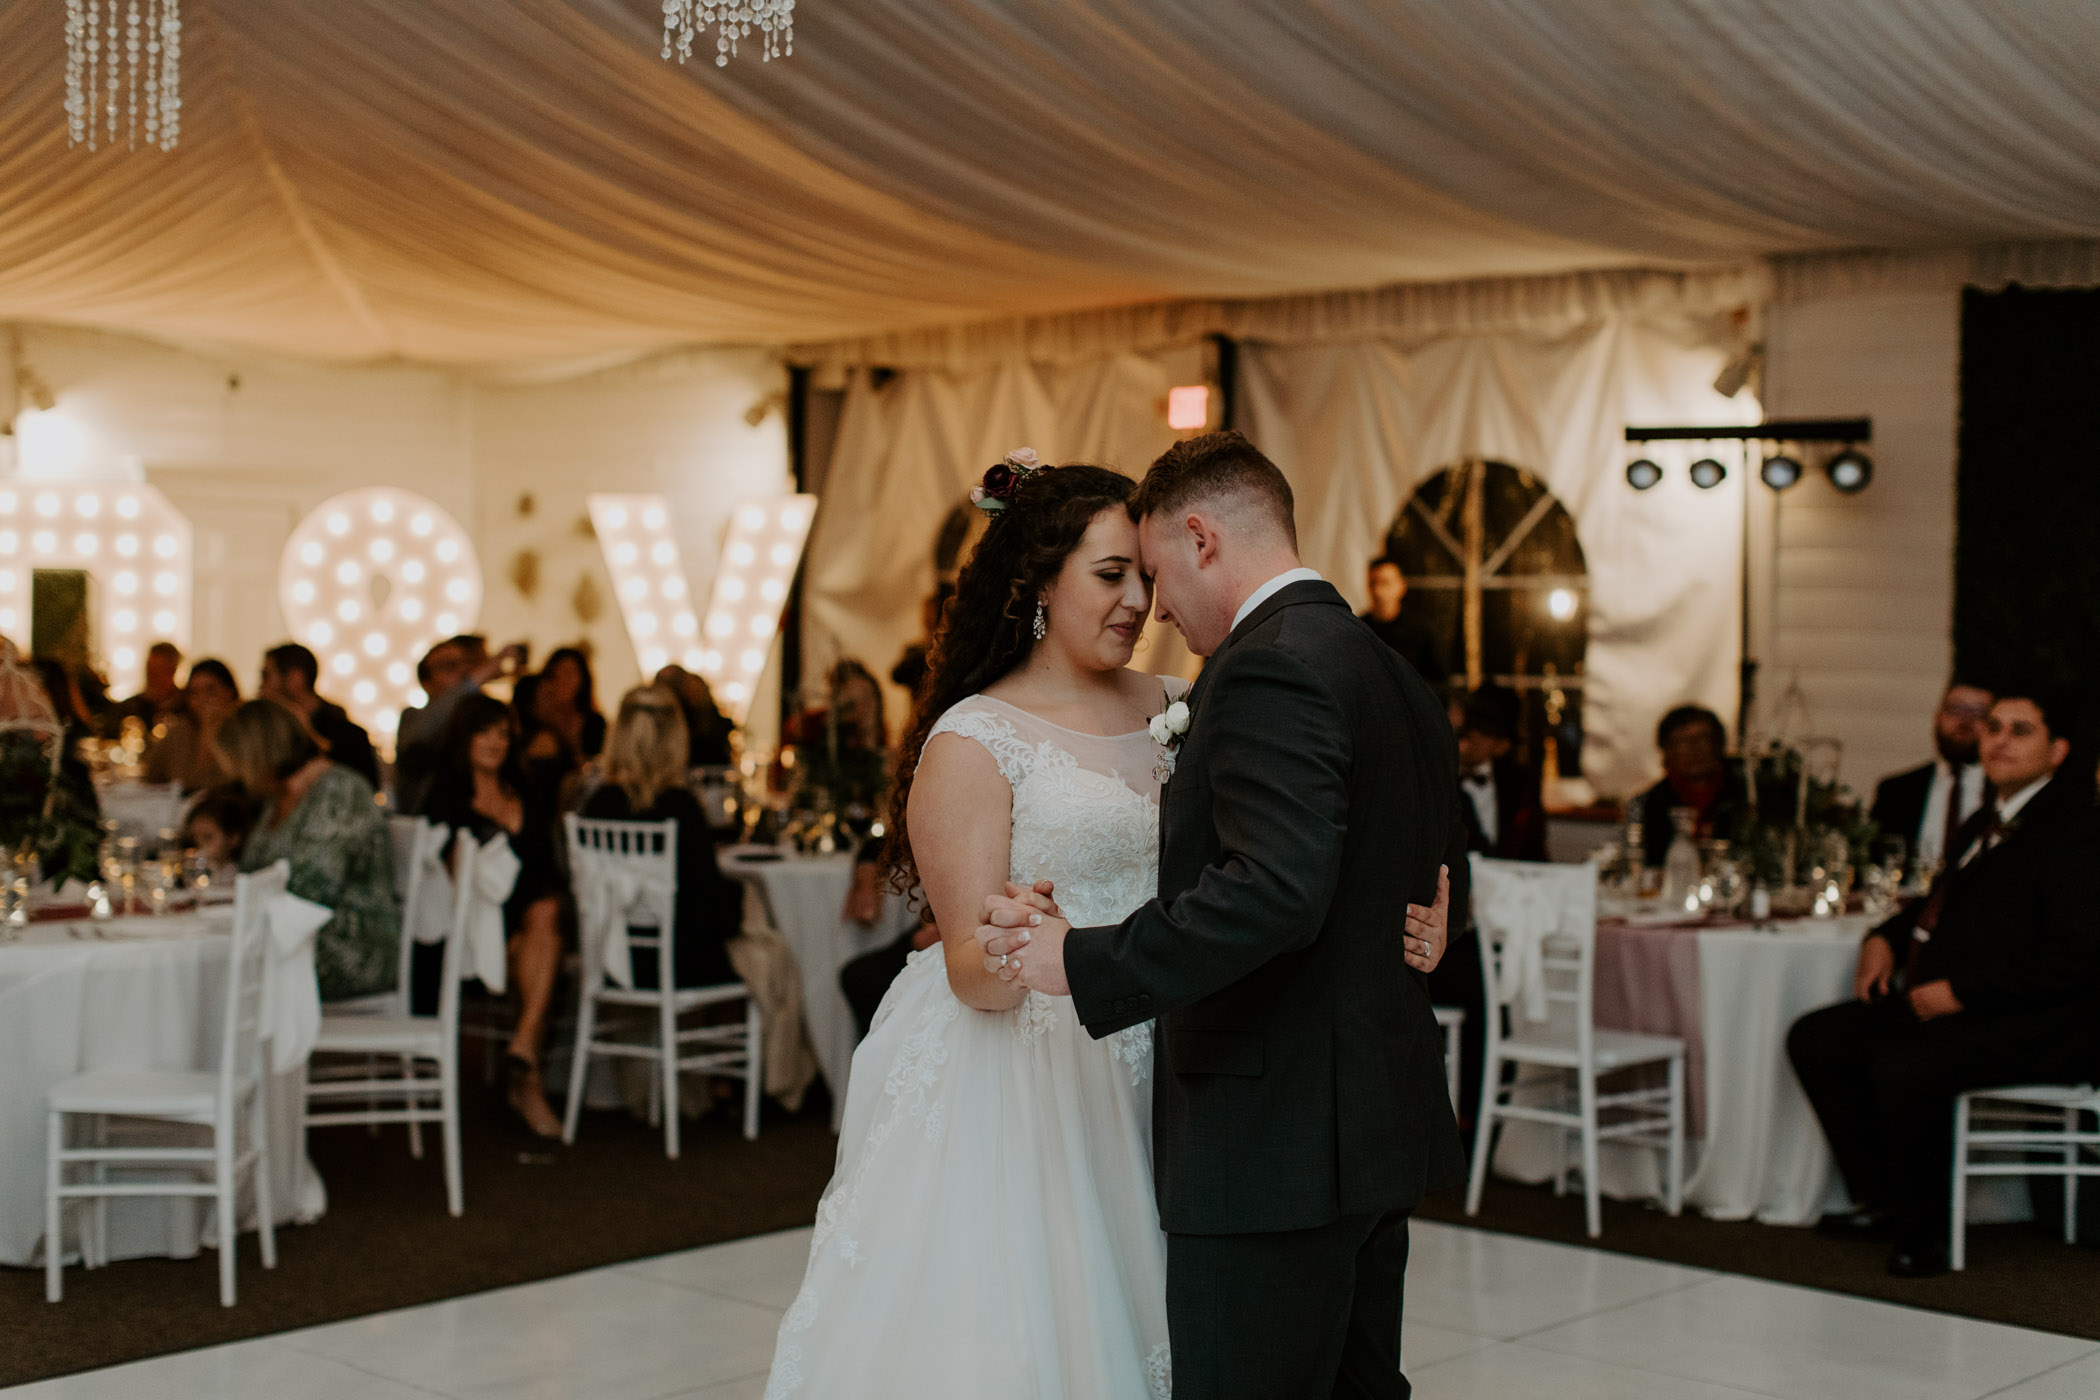 Bride and groom sharing their first dance in front of large light up sign